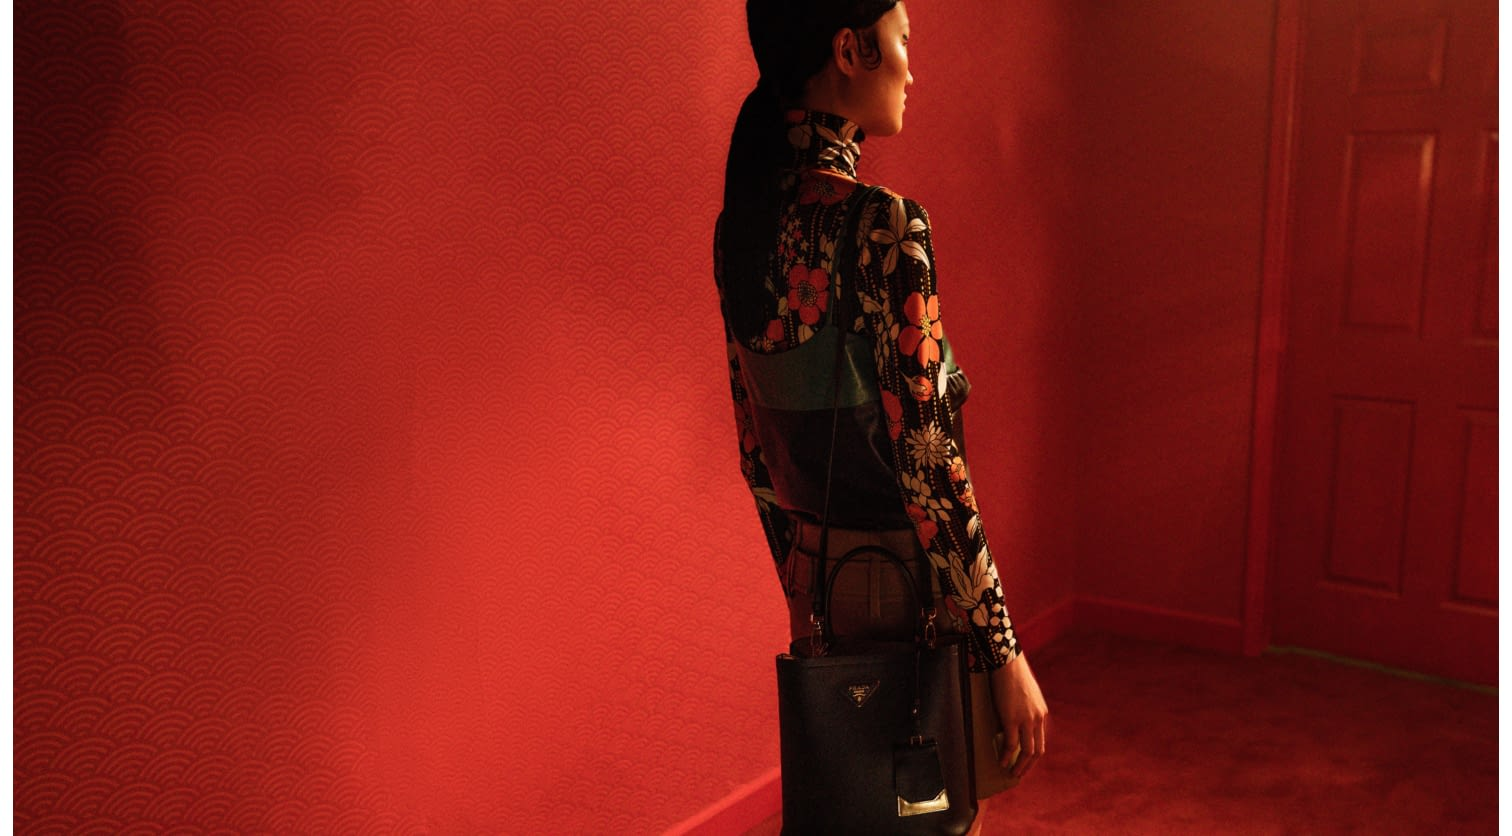 Prada Chinese New Year by Johanna Siring-21_16x9.jpg